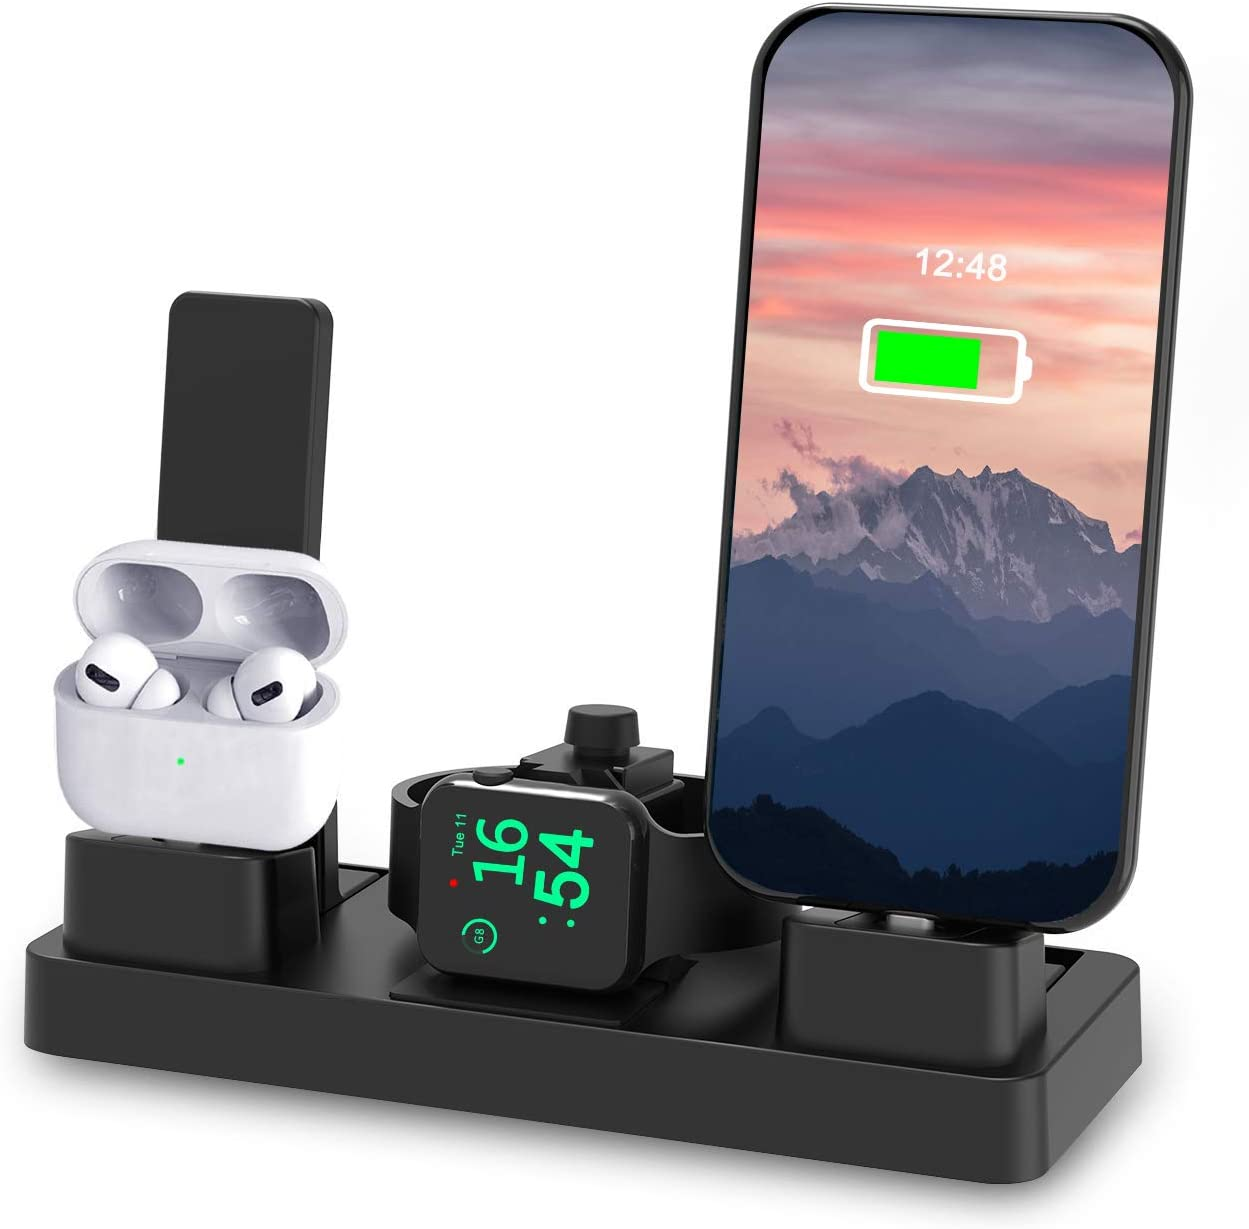 undassenk Charging Station for Apple Products 3 in 1 Charging Stand Compatible with Apple Watch 6/5/4/3/2/1/SE & iPhone 6~12 & Airpod Series Charging Dock